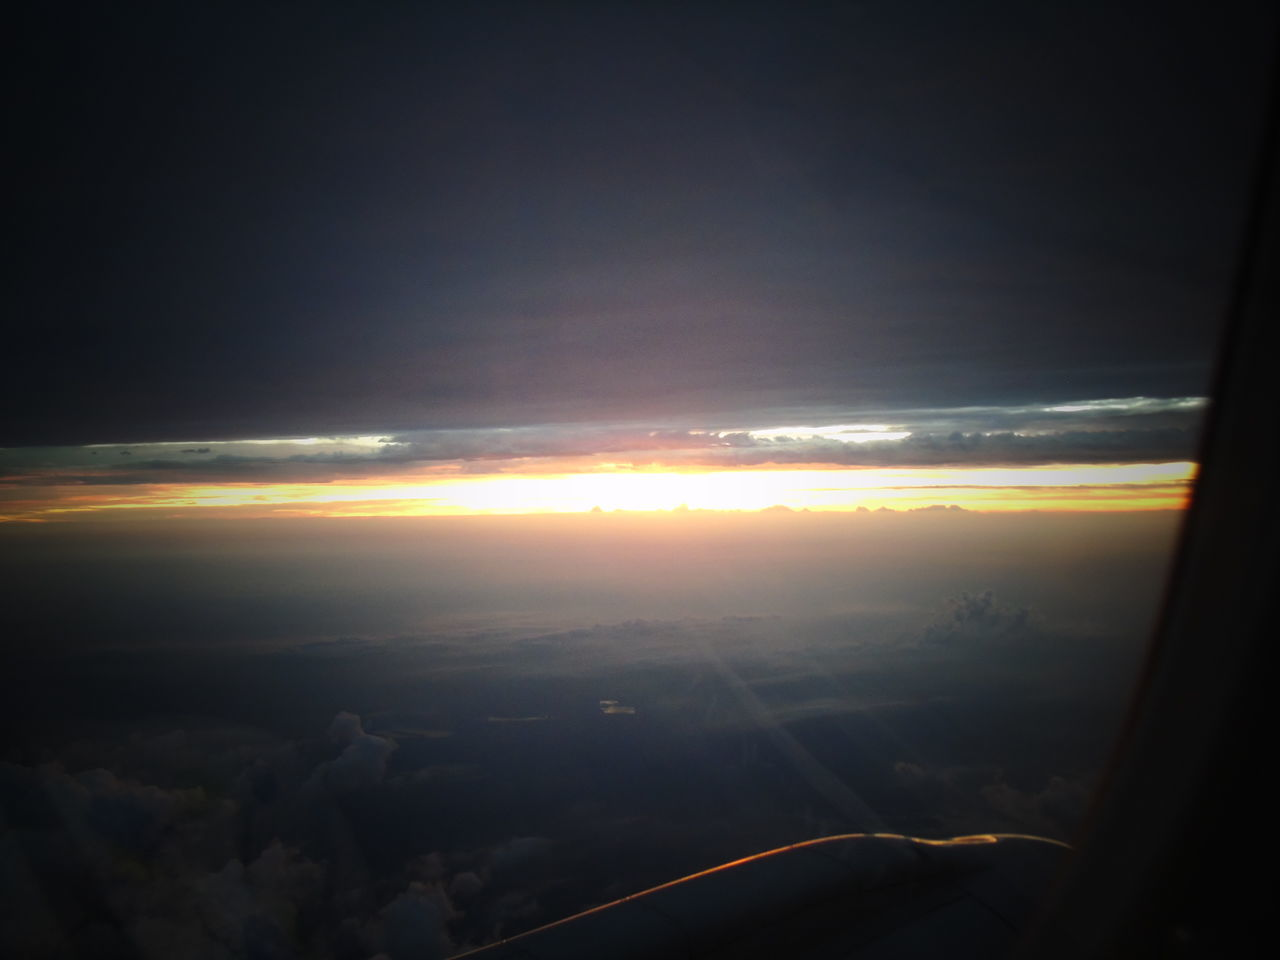 sunset, cloud - sky, aerial view, scenics, beauty in nature, nature, tranquil scene, tranquility, sky, landscape, airplane, transportation, no people, journey, outdoors, flying, airplane wing, day